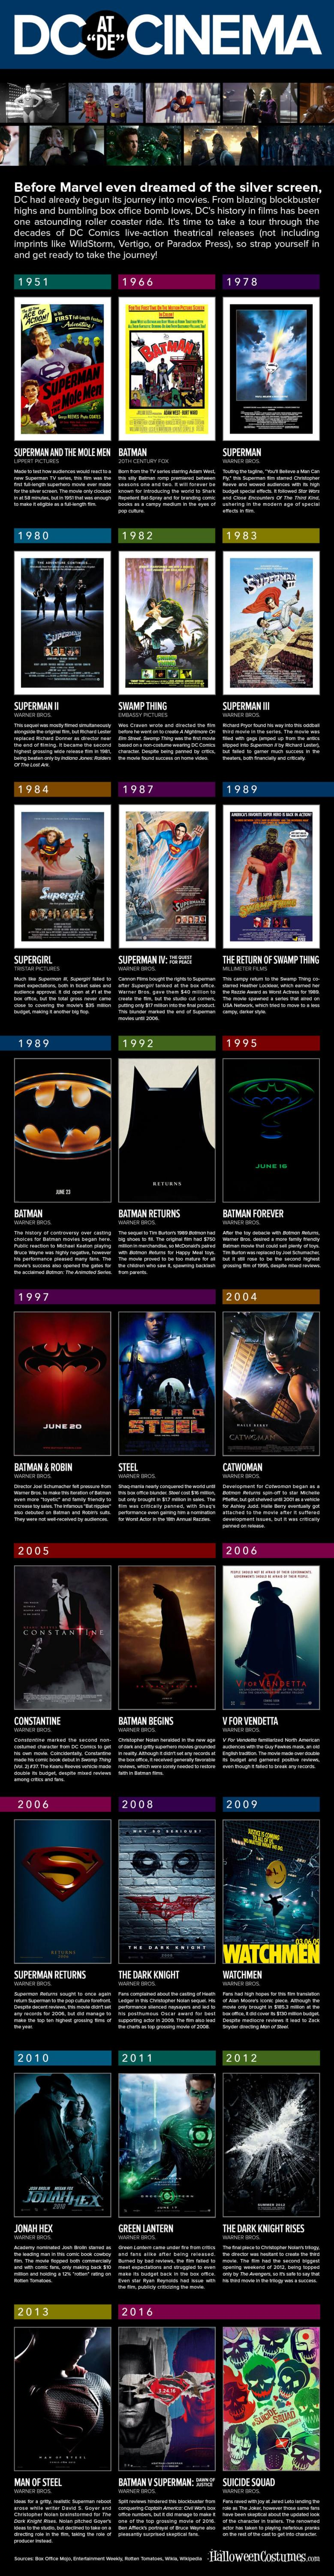 DC-Movies-Infographic